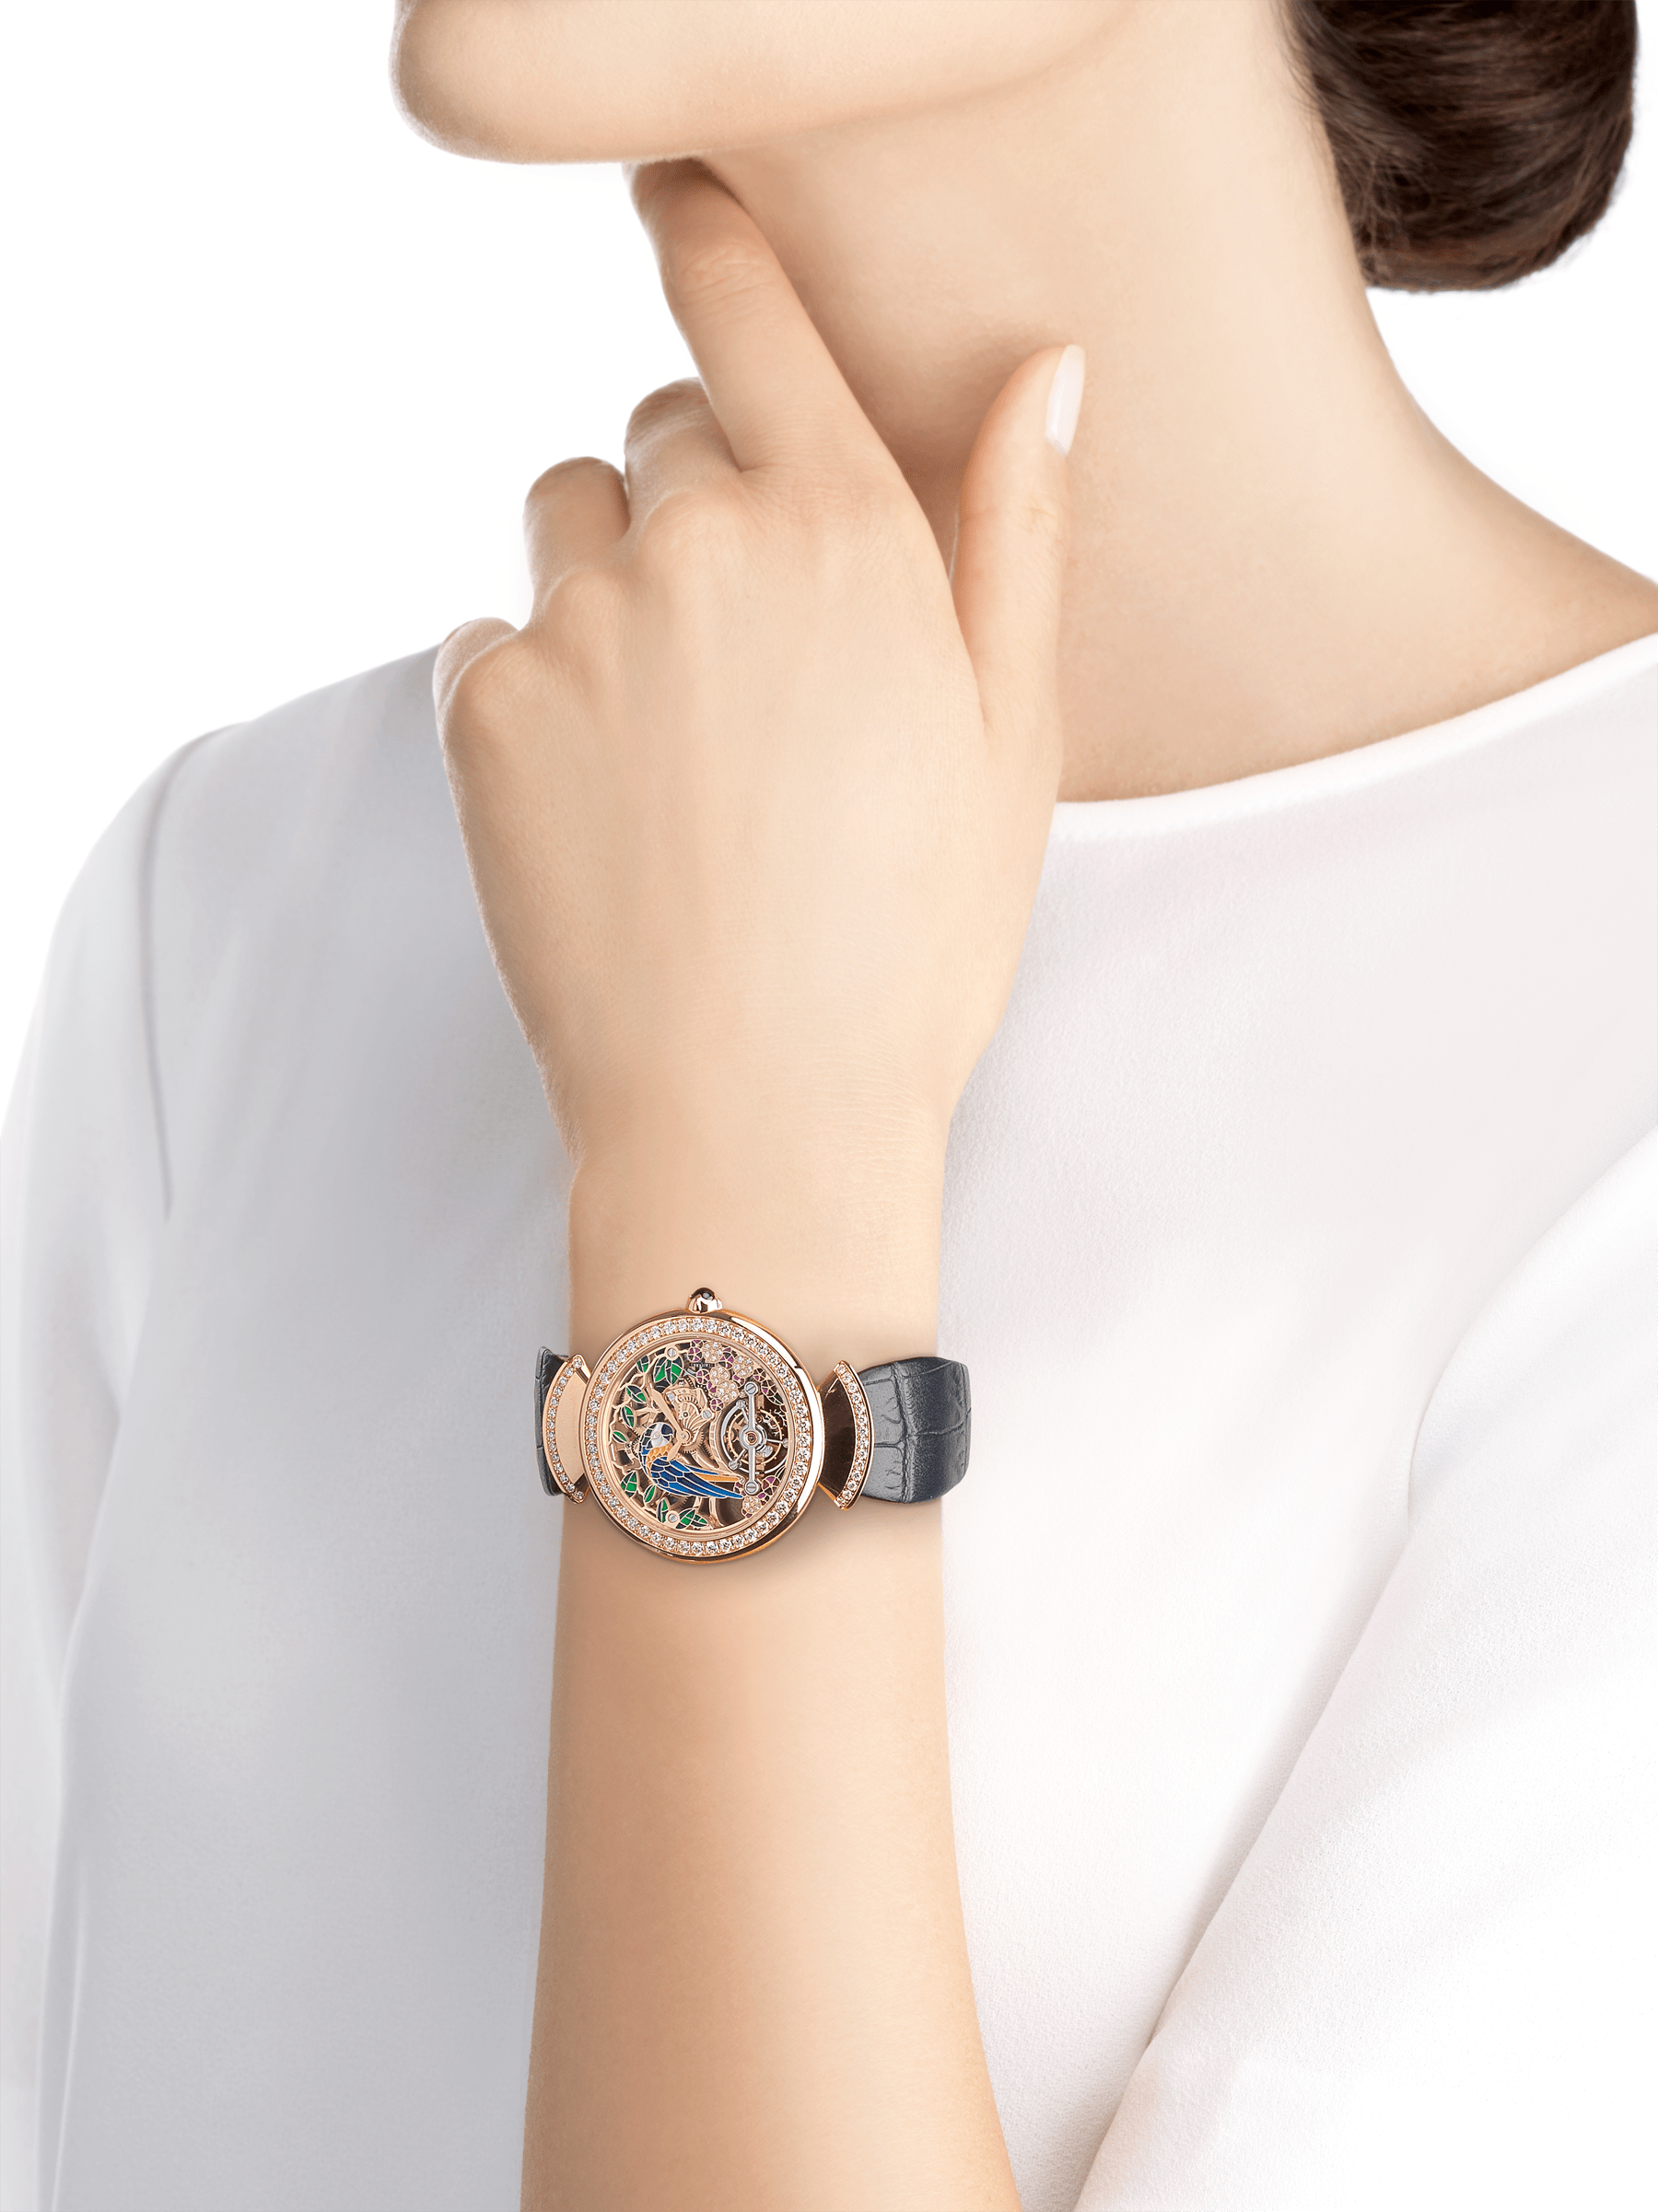 DIVAS' DREAM watch with 18 kt rose gold mechanical manufacture skeletonized movement and tourbillon. 18 kt rose gold case set with brilliant-cut diamonds, dial with hand painted parrot, flowers and leaves set with diamonds and blue alligator bracelet 102542 image 2